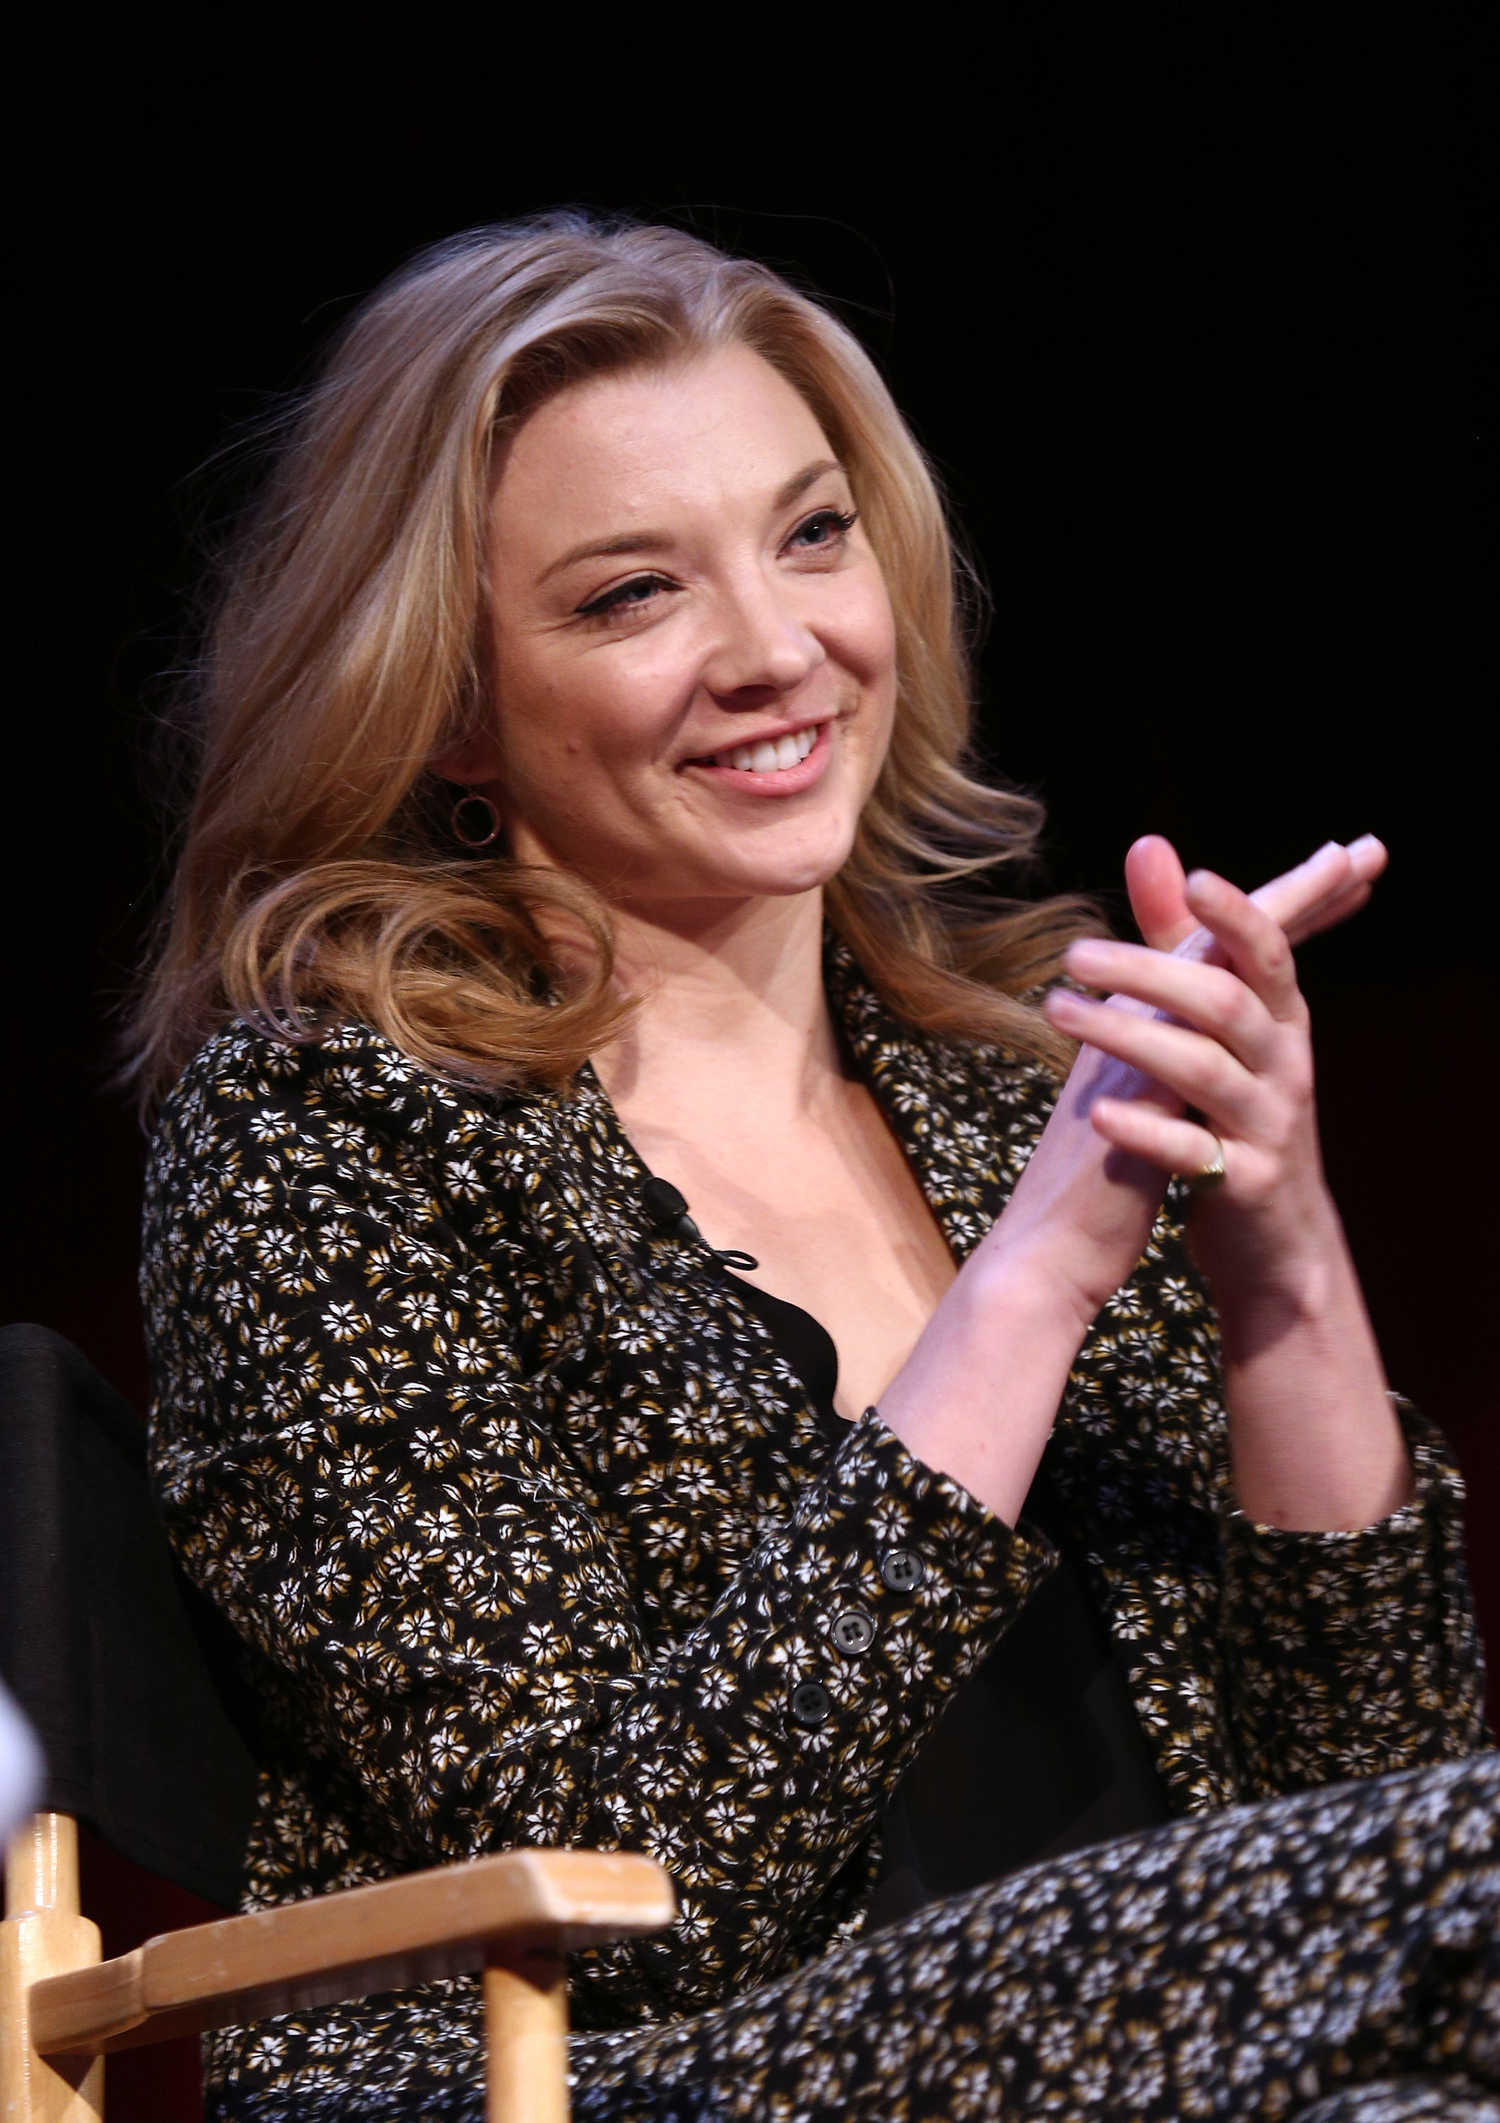 Natalie Dormer At The Women On Screen Panel Discussion At The O Arena In London on Kensington Palace London